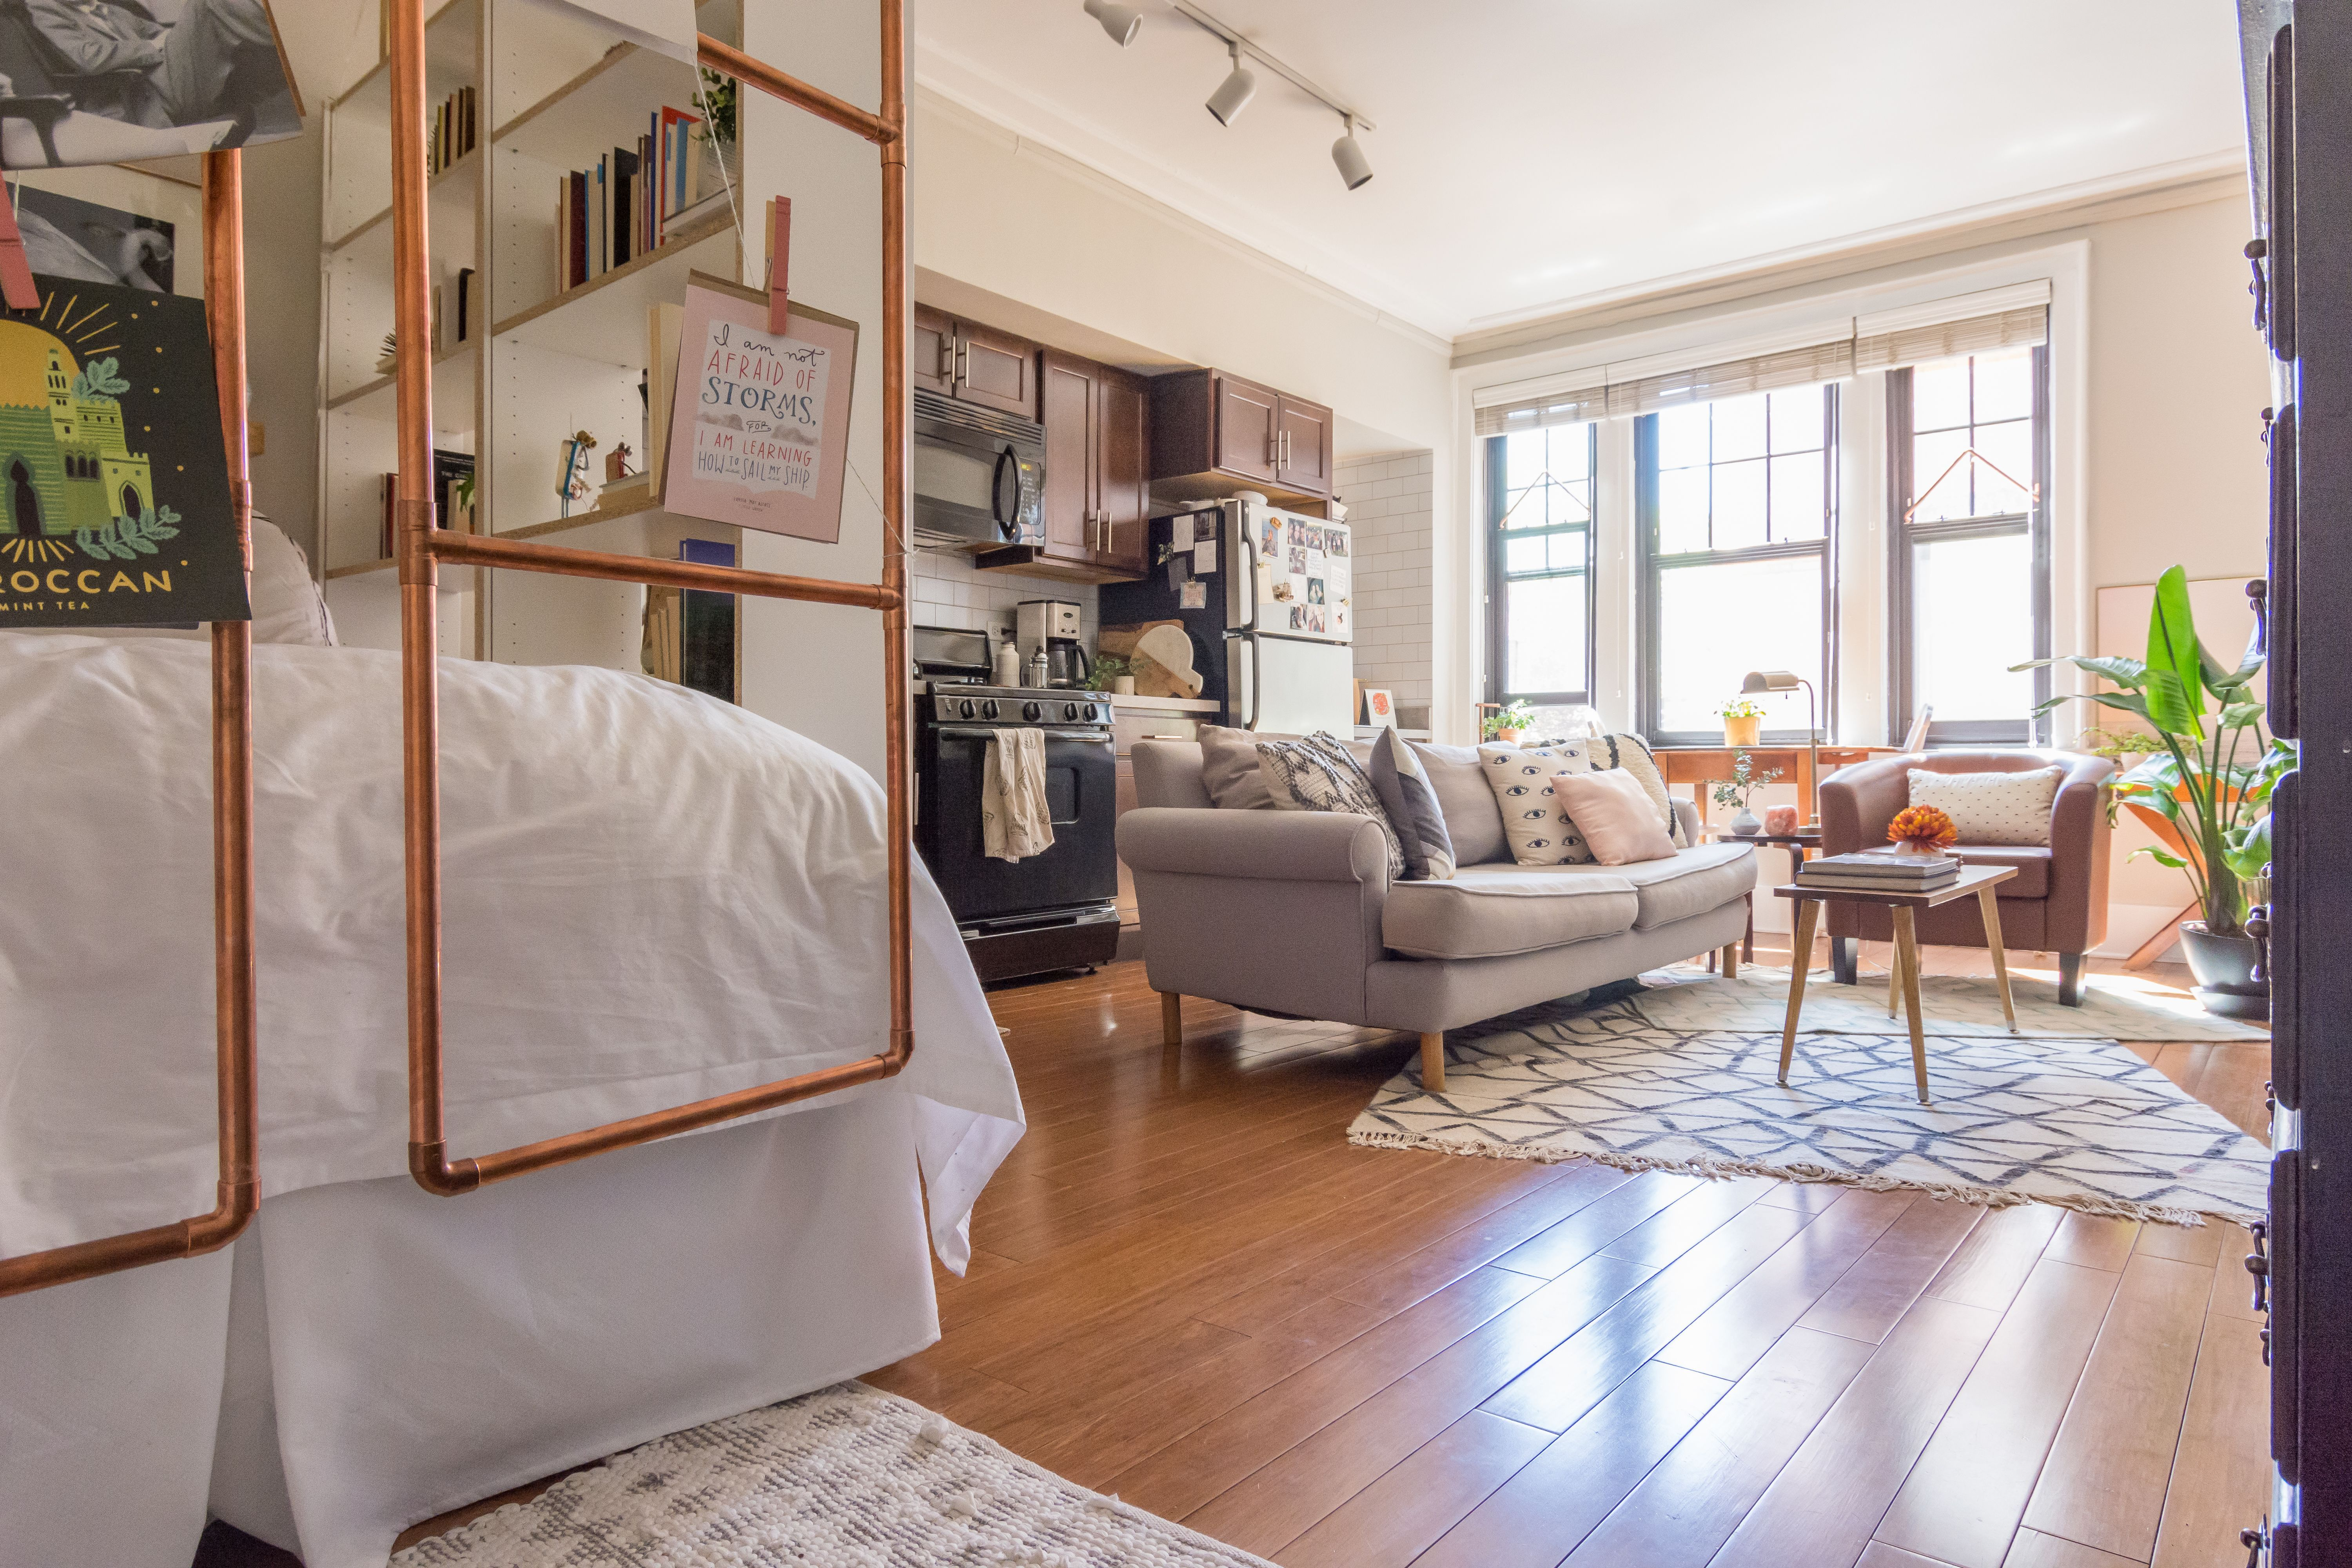 House Tour A Cute 400 Square Foot Chicago Studio Apartment Therapy Tiny